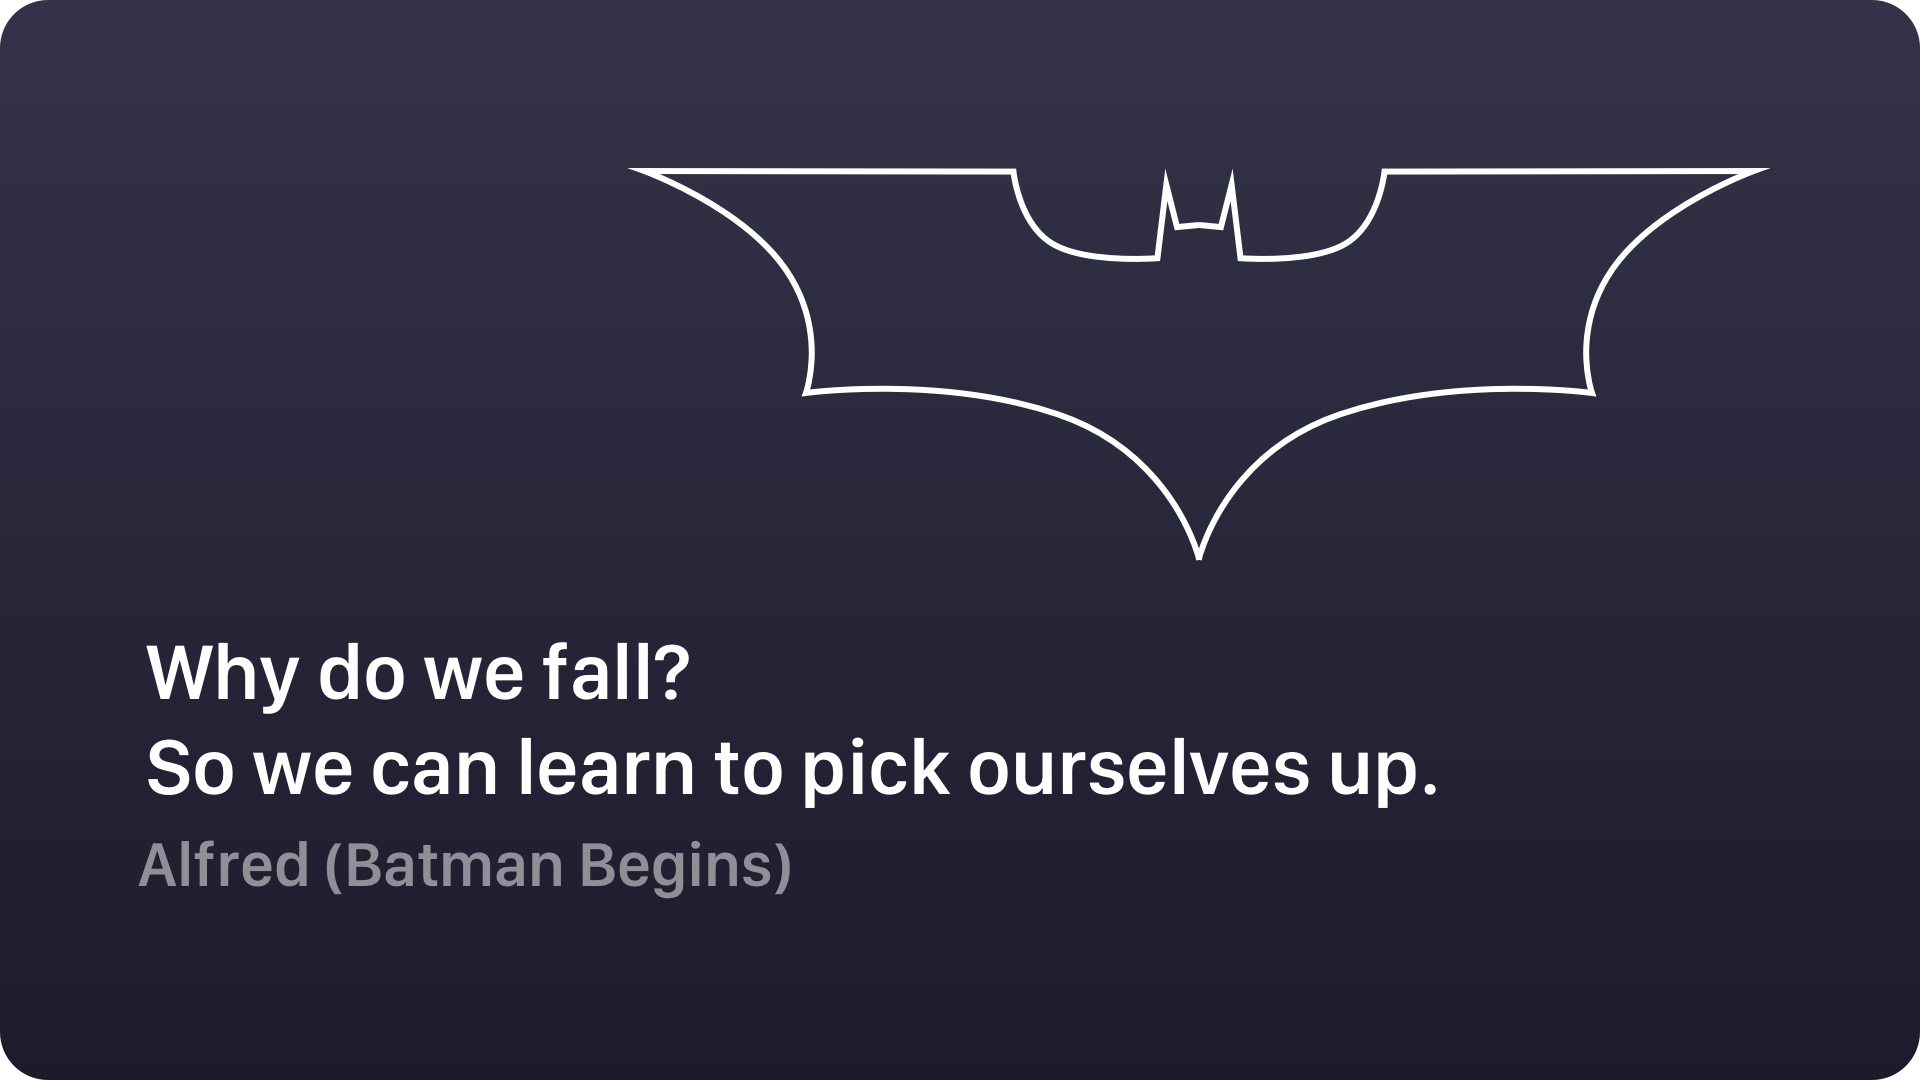 Why do we fall? So we can learn to pick ourselves up ...